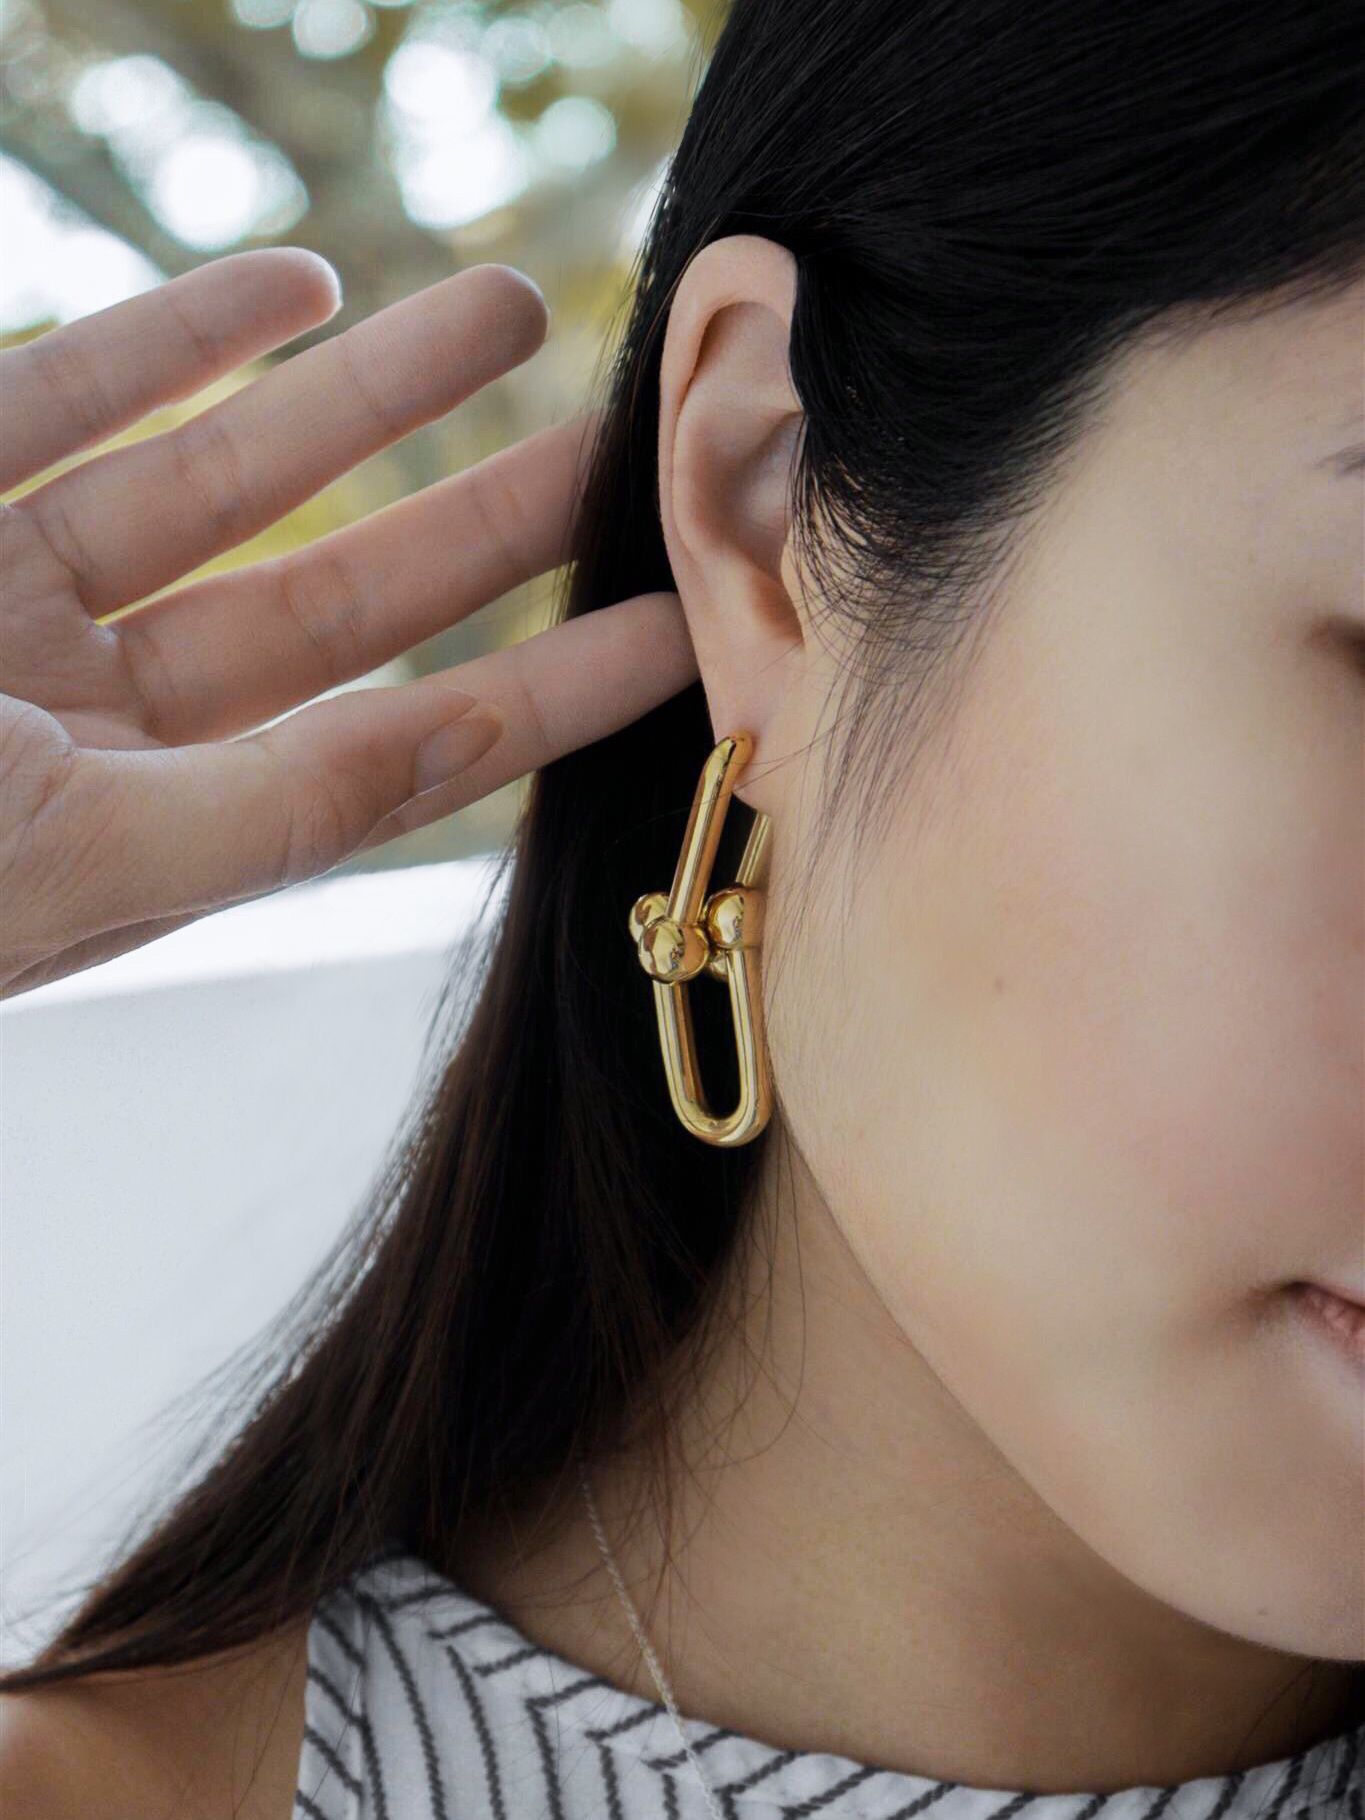 Tiffany HardWear Link Earrings in 18k Gold, $4,200